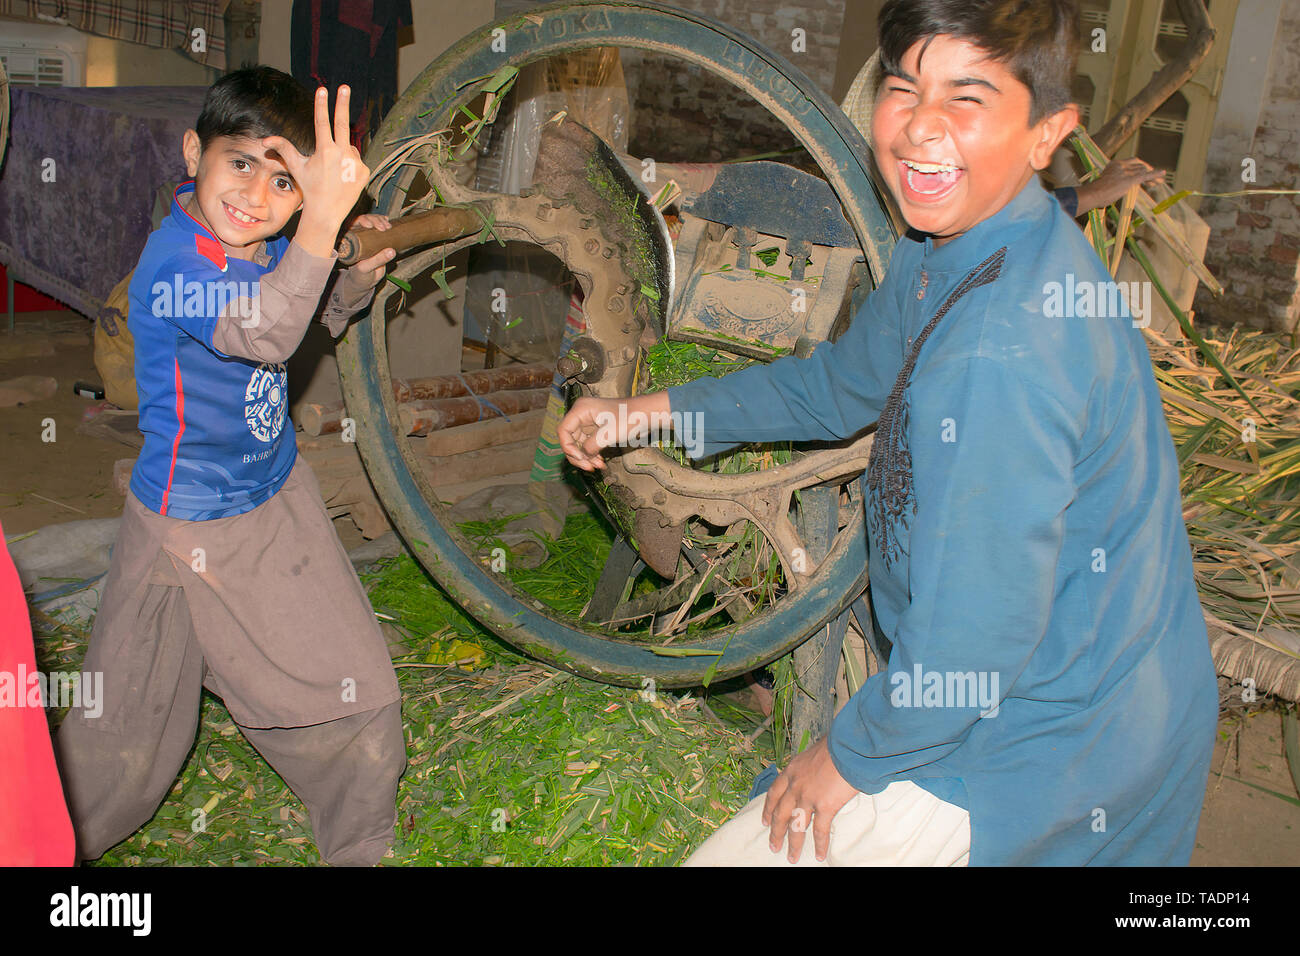 rahim yar khan,punjab,pakistan-jan 21,2019:two young boys cutting grass on a old fashion machine in a very funny way. - Stock Image